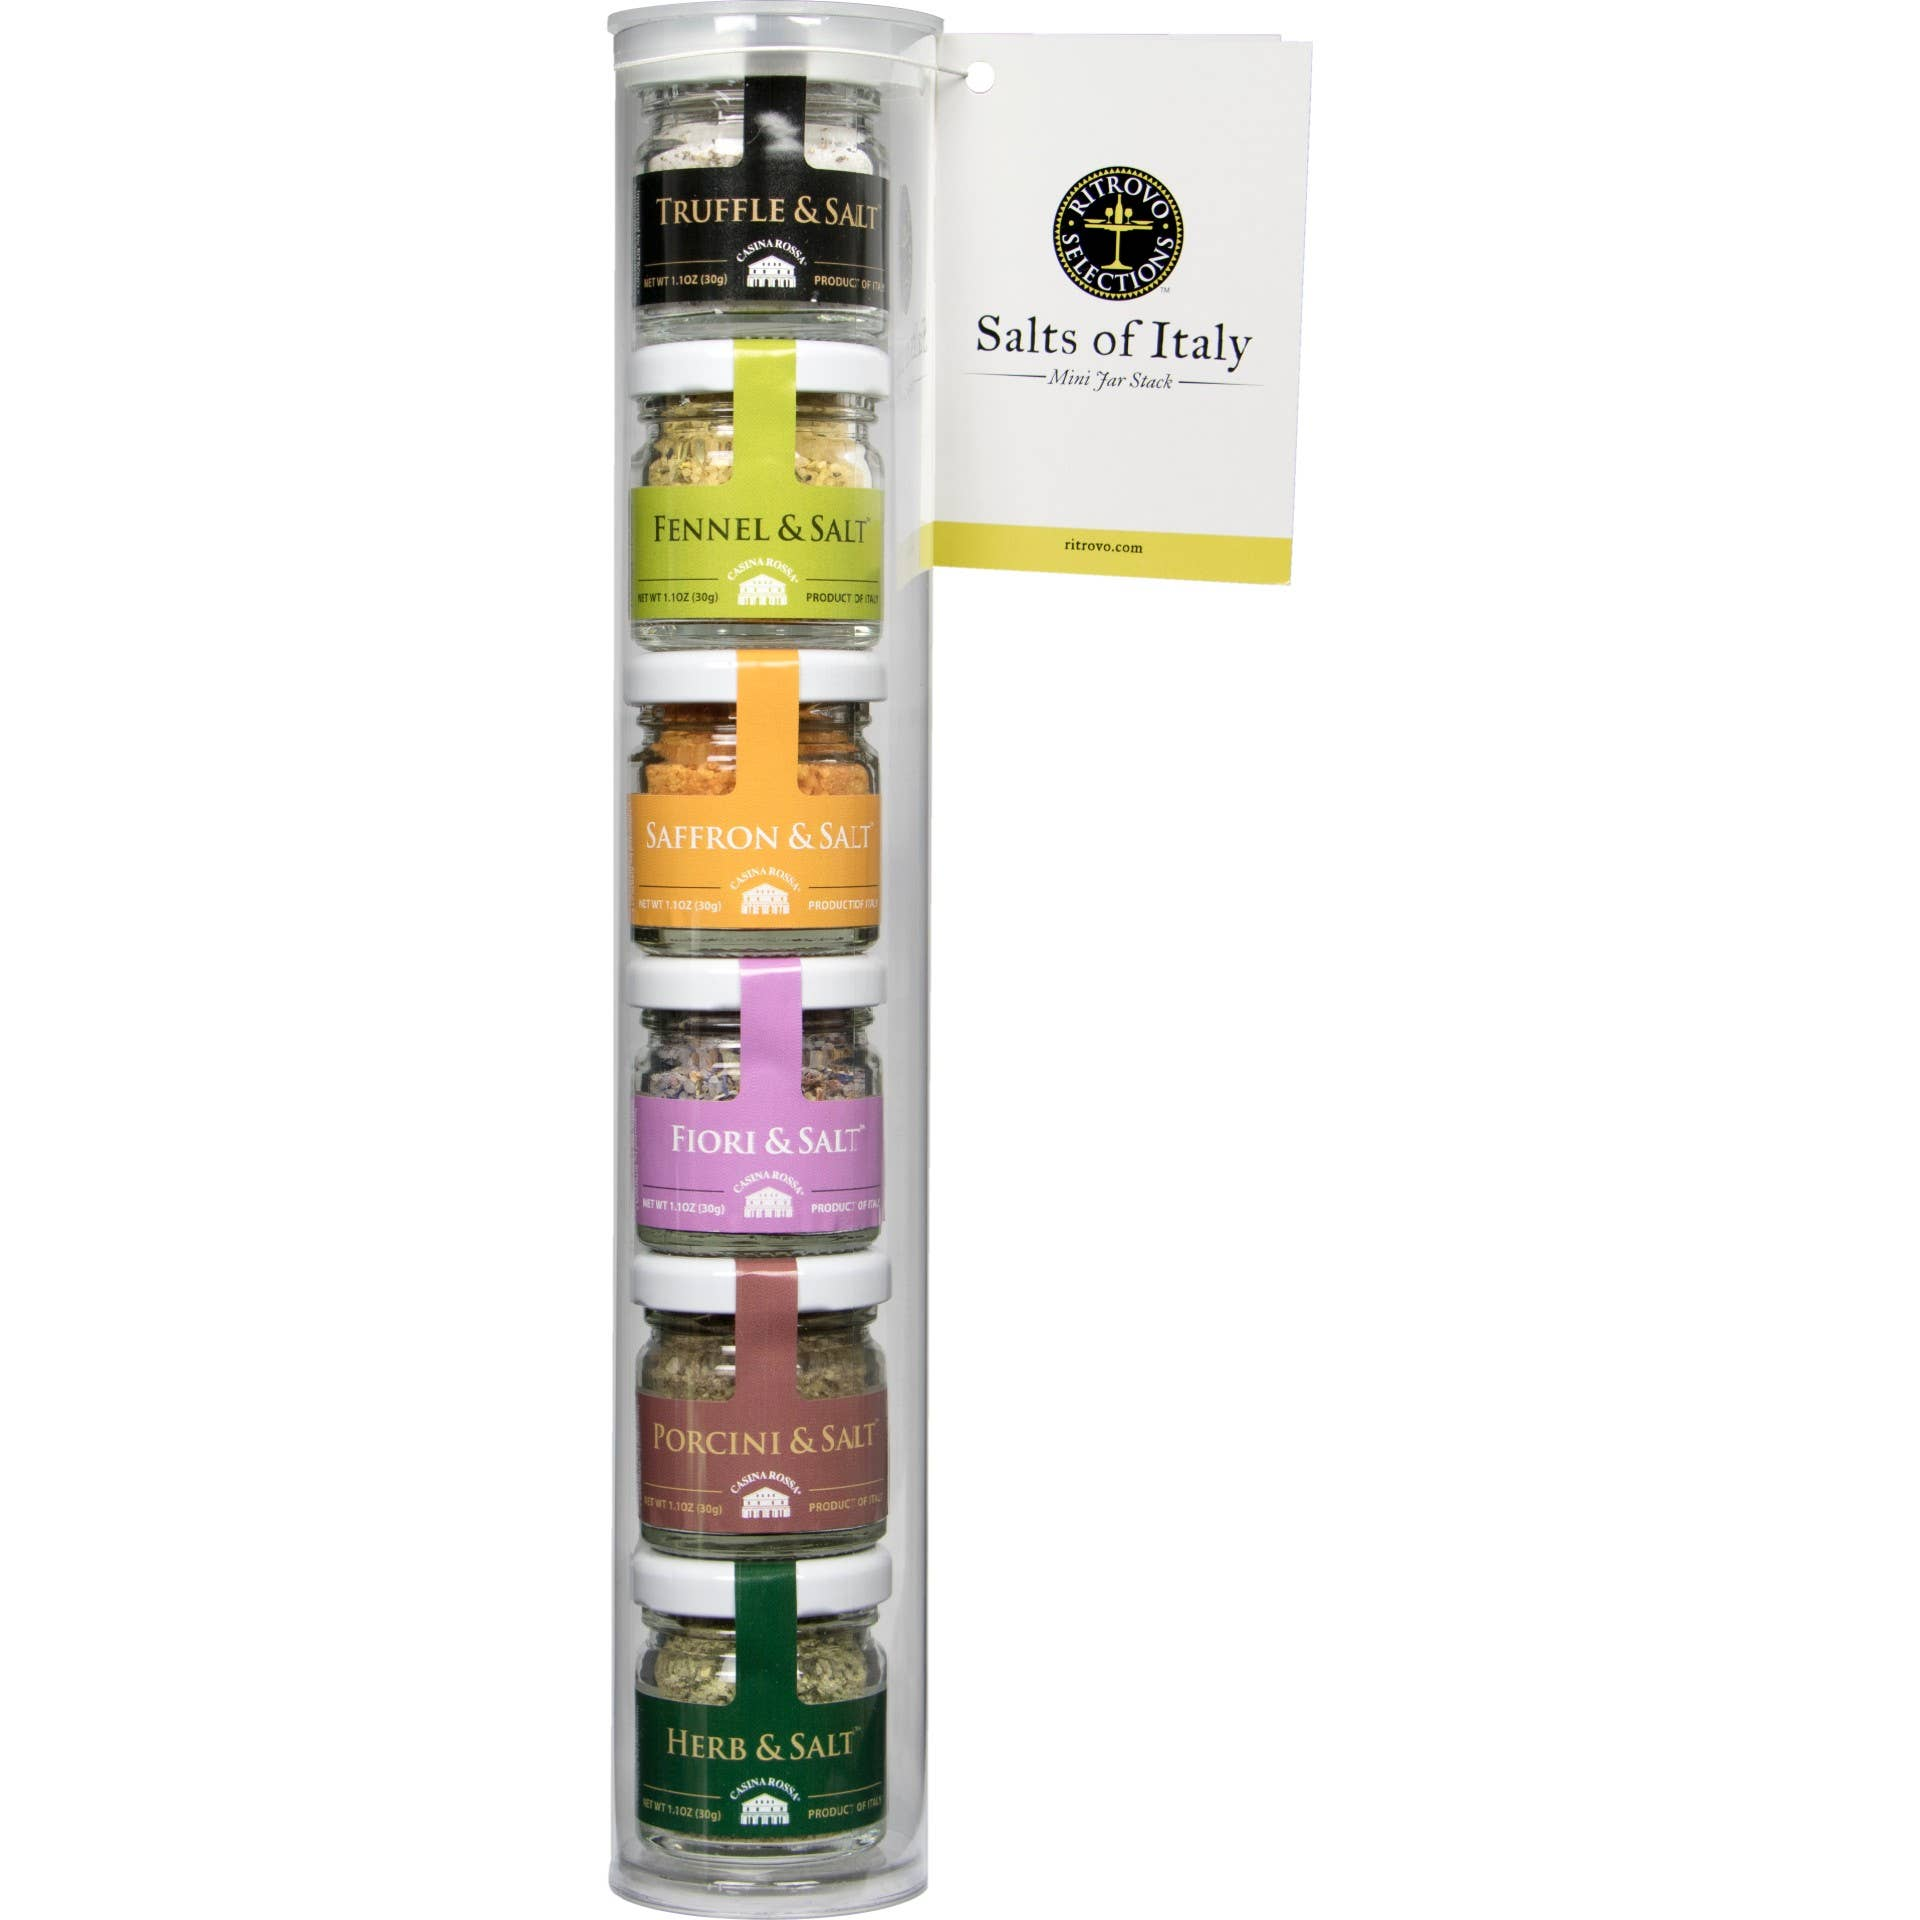 Salts of Italy, Italitan Salt Stacks - 6 Mini Salt Jars in Gift Pack